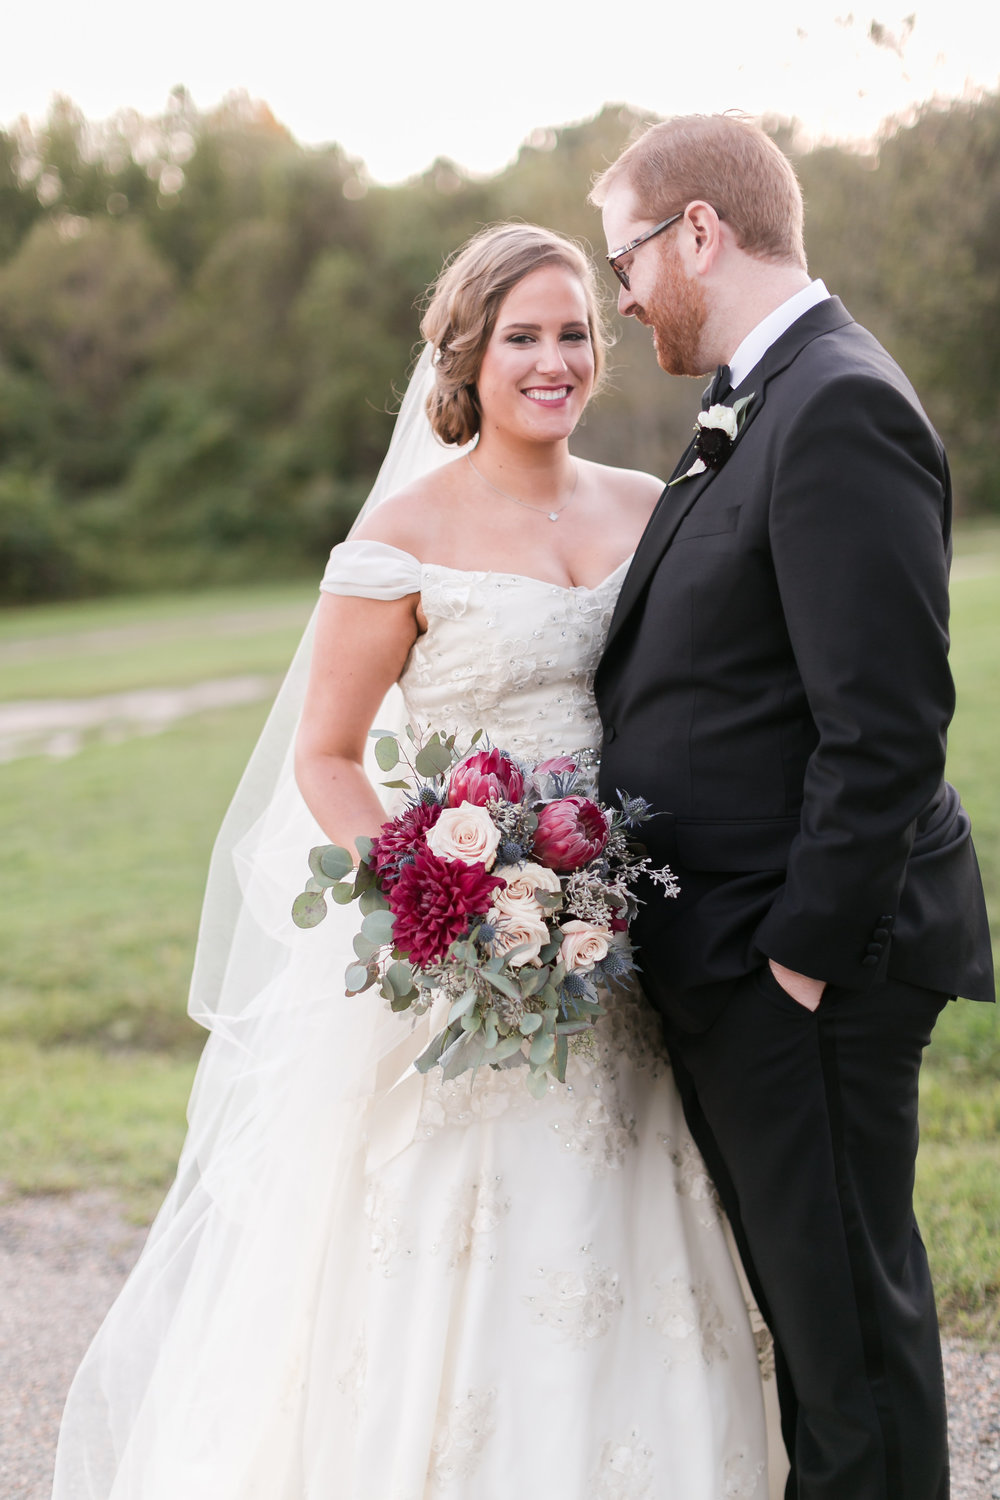 To see more images, click here:  Lea  nne & Phill - Williamsburg, Virginia Wedding